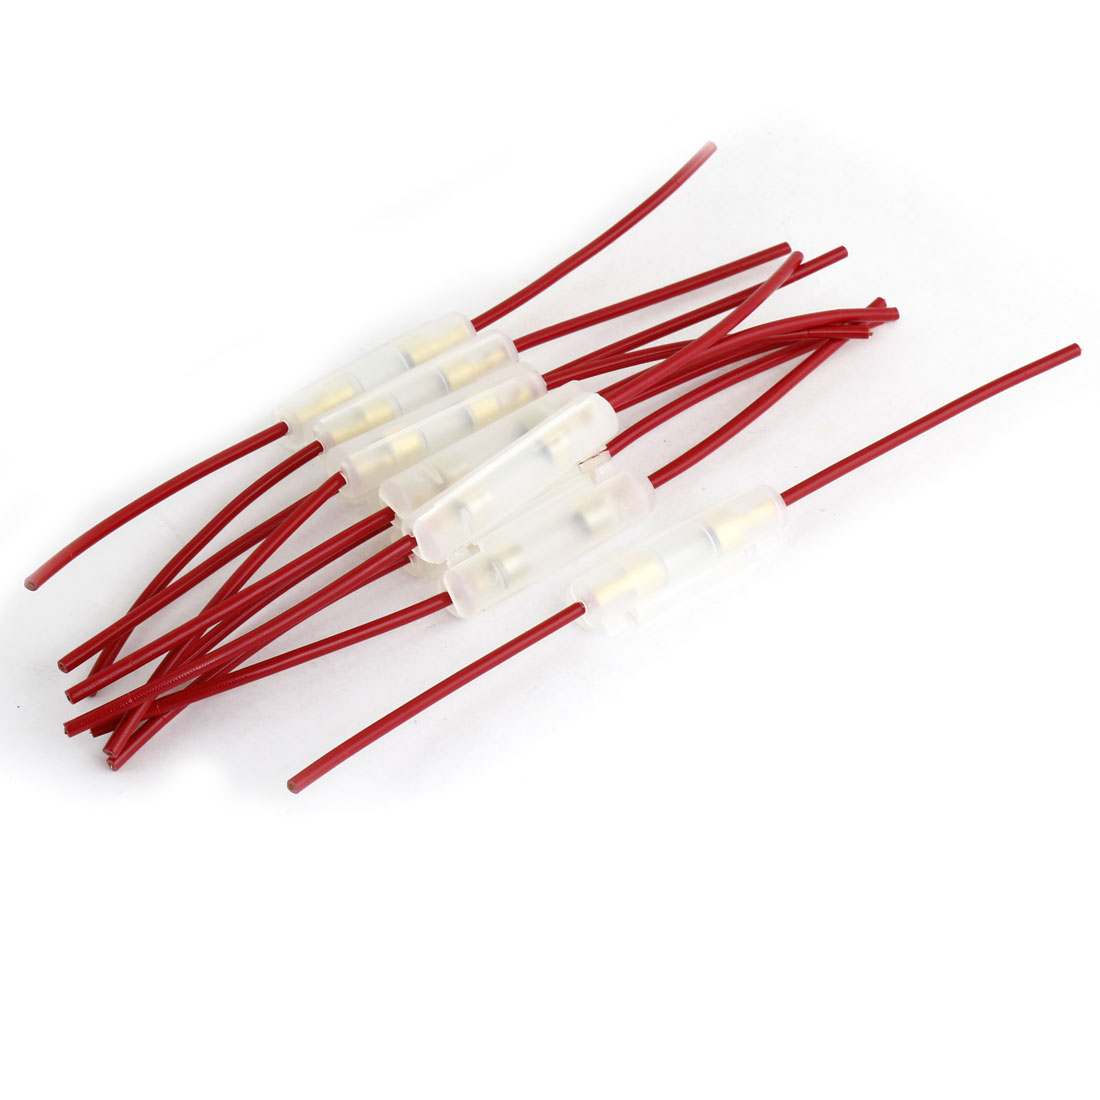 Replacement Red In-line Screw Type Car Motorcycle Lead Wire Fuse Holder 10PCS